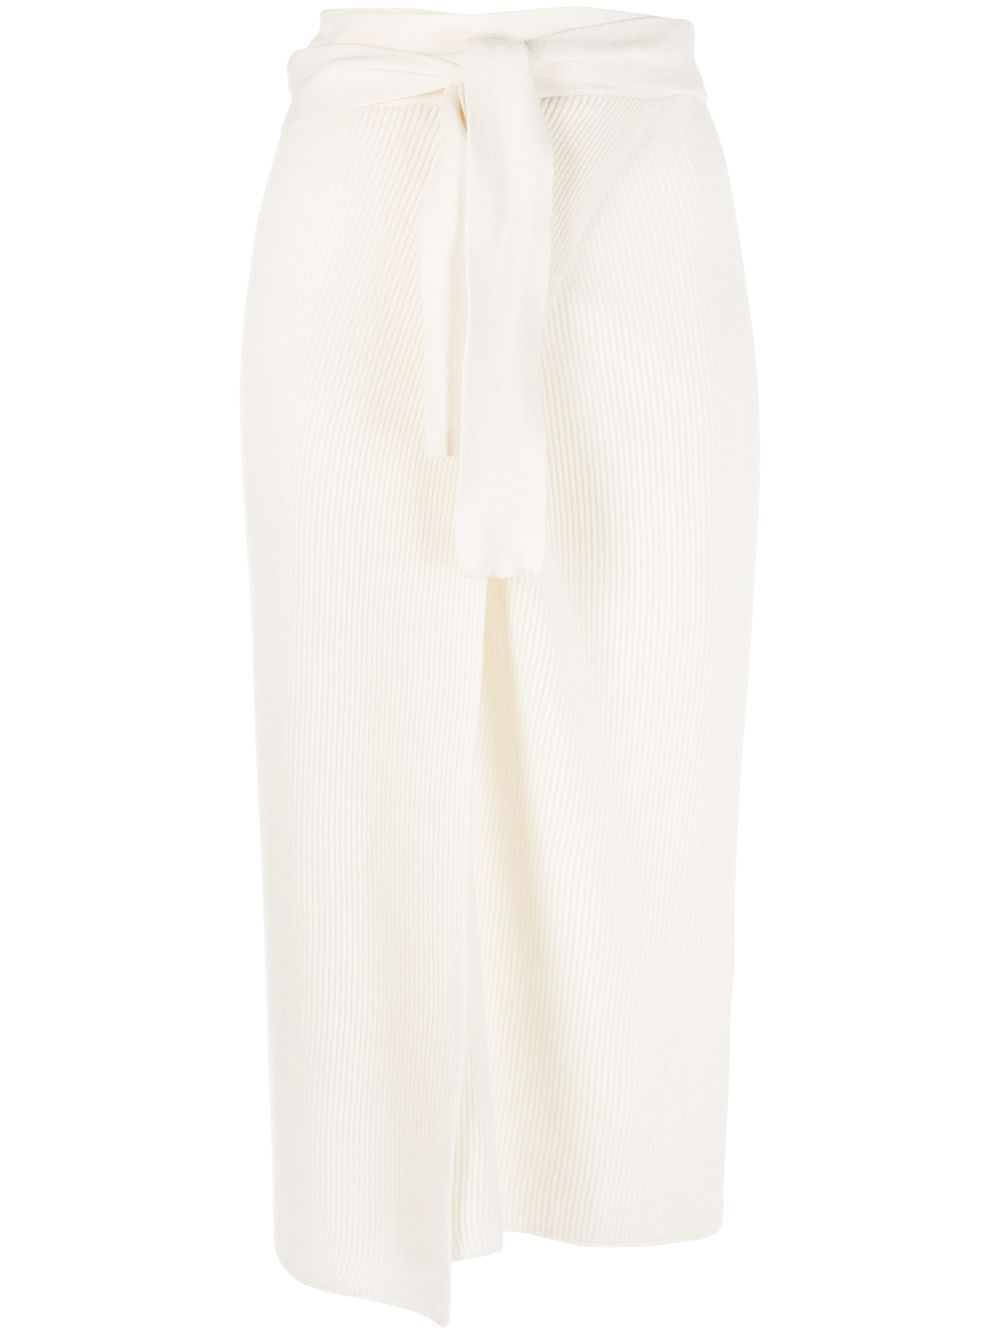 Lucy Cashmere Wrap Skirt